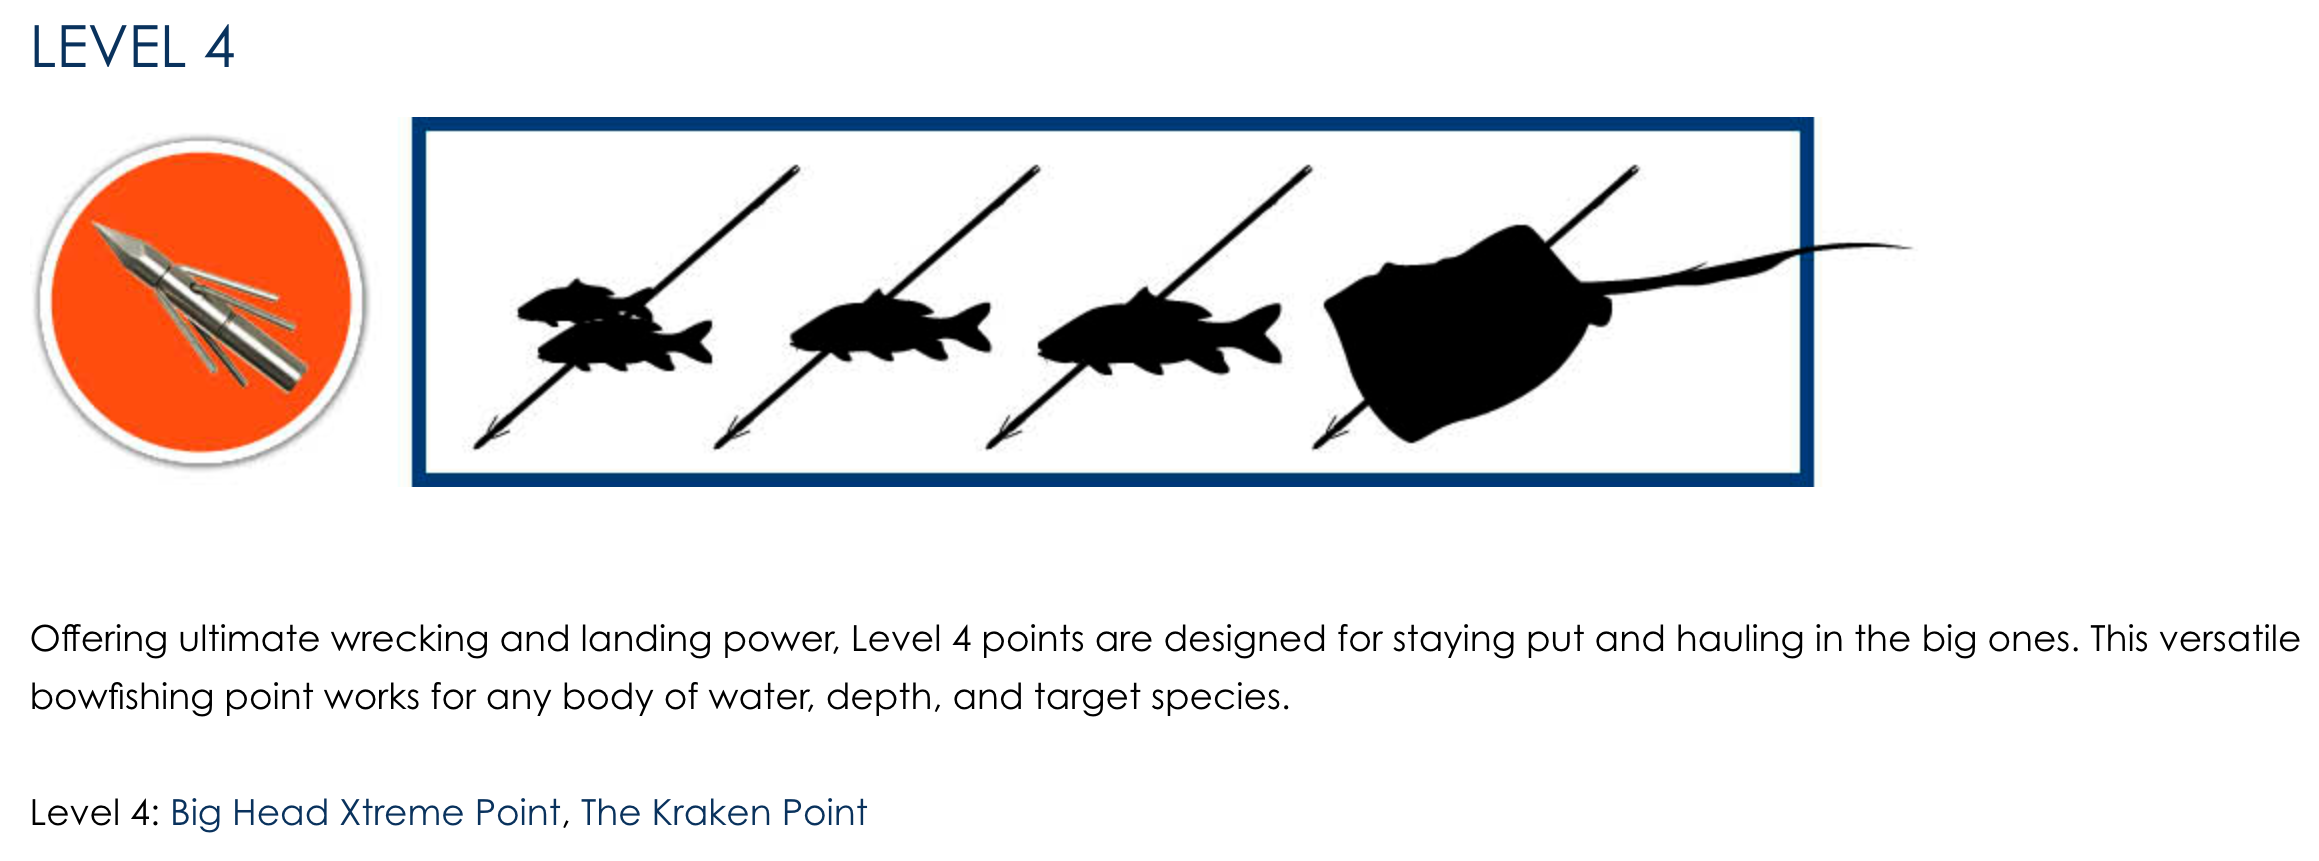 Fin-Finder Level 4 Bowfishing Point, Bowfishing Point